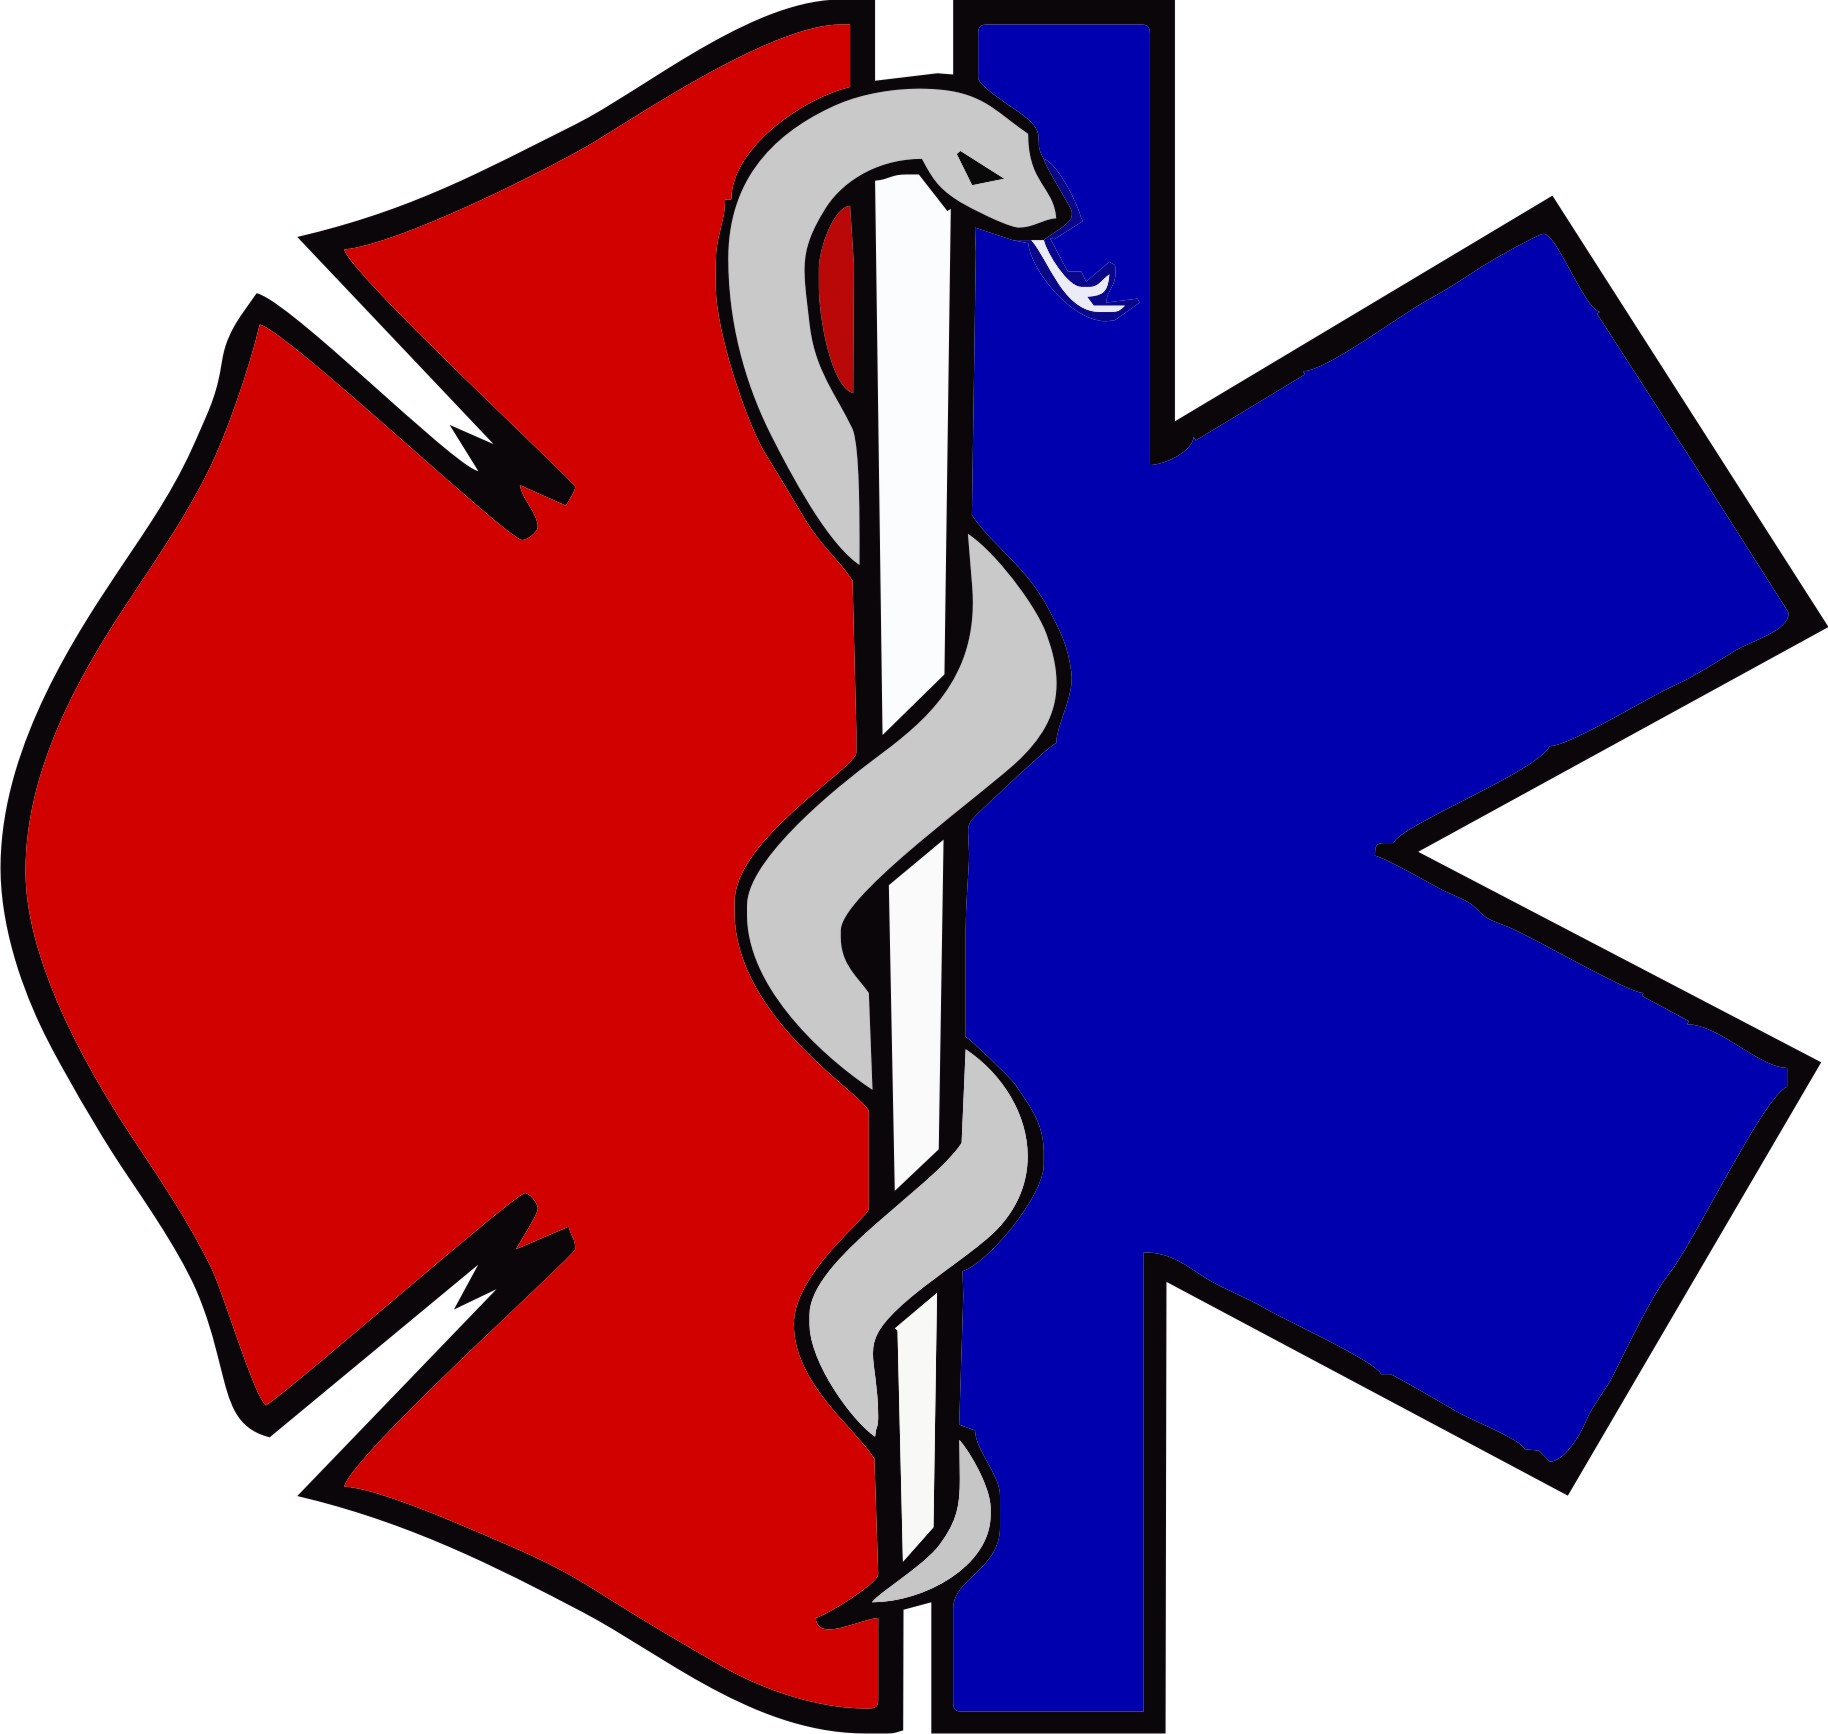 Star Of Life Vector at GetDrawings.com.